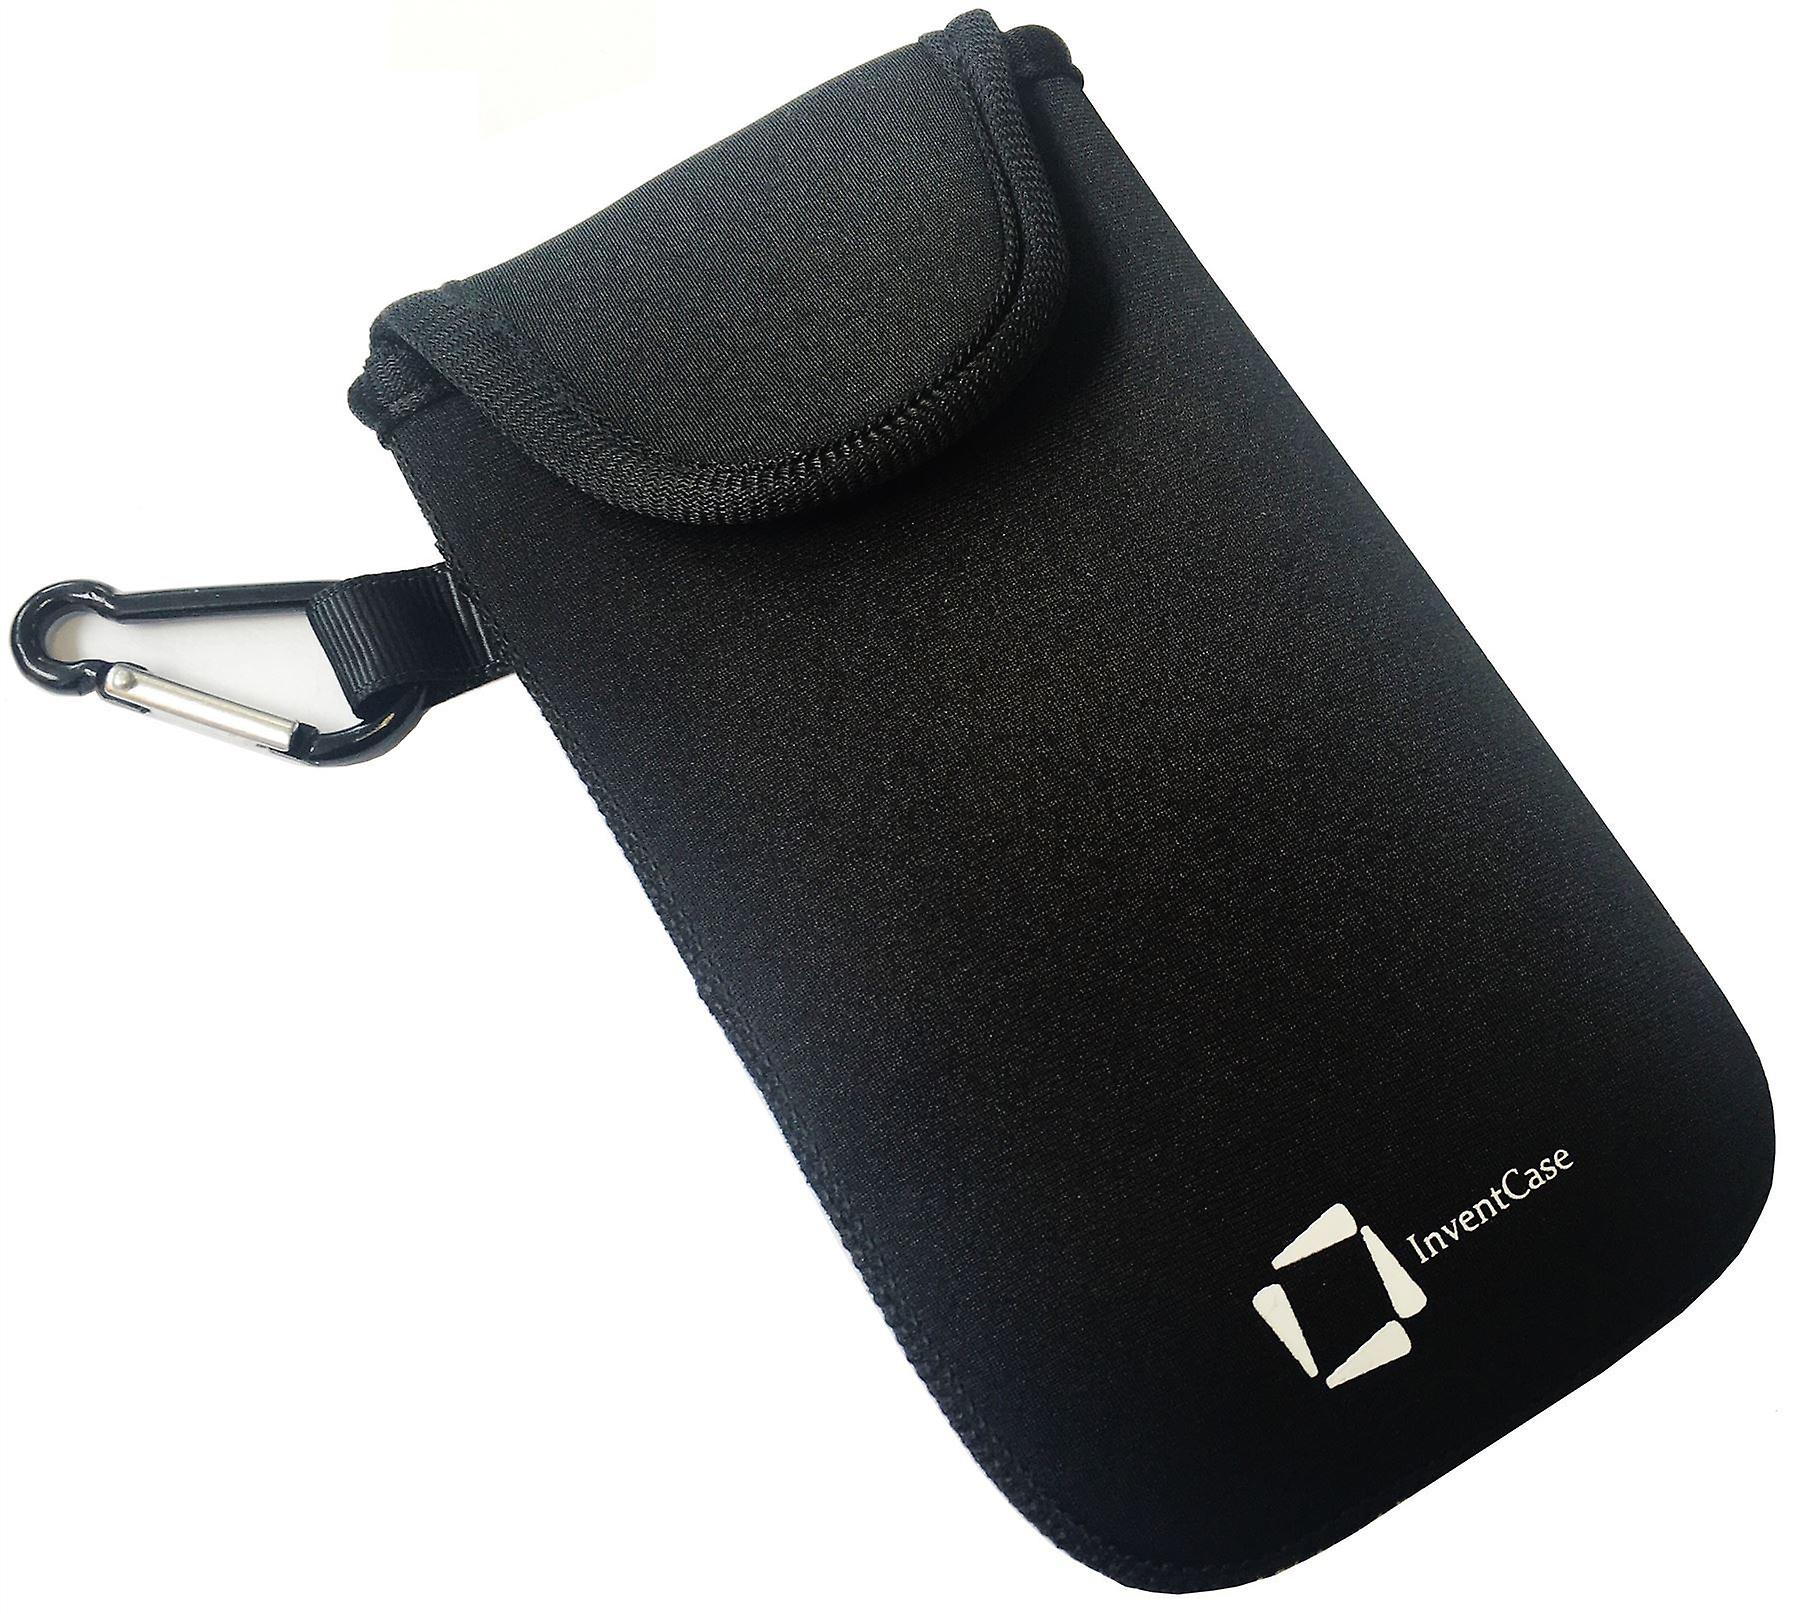 InventCase Neoprene Impact Resistant Protective Pouch Case Cover Bag with Velcro Closure and Aluminium Carabiner for BlackBerry Q5 - Black